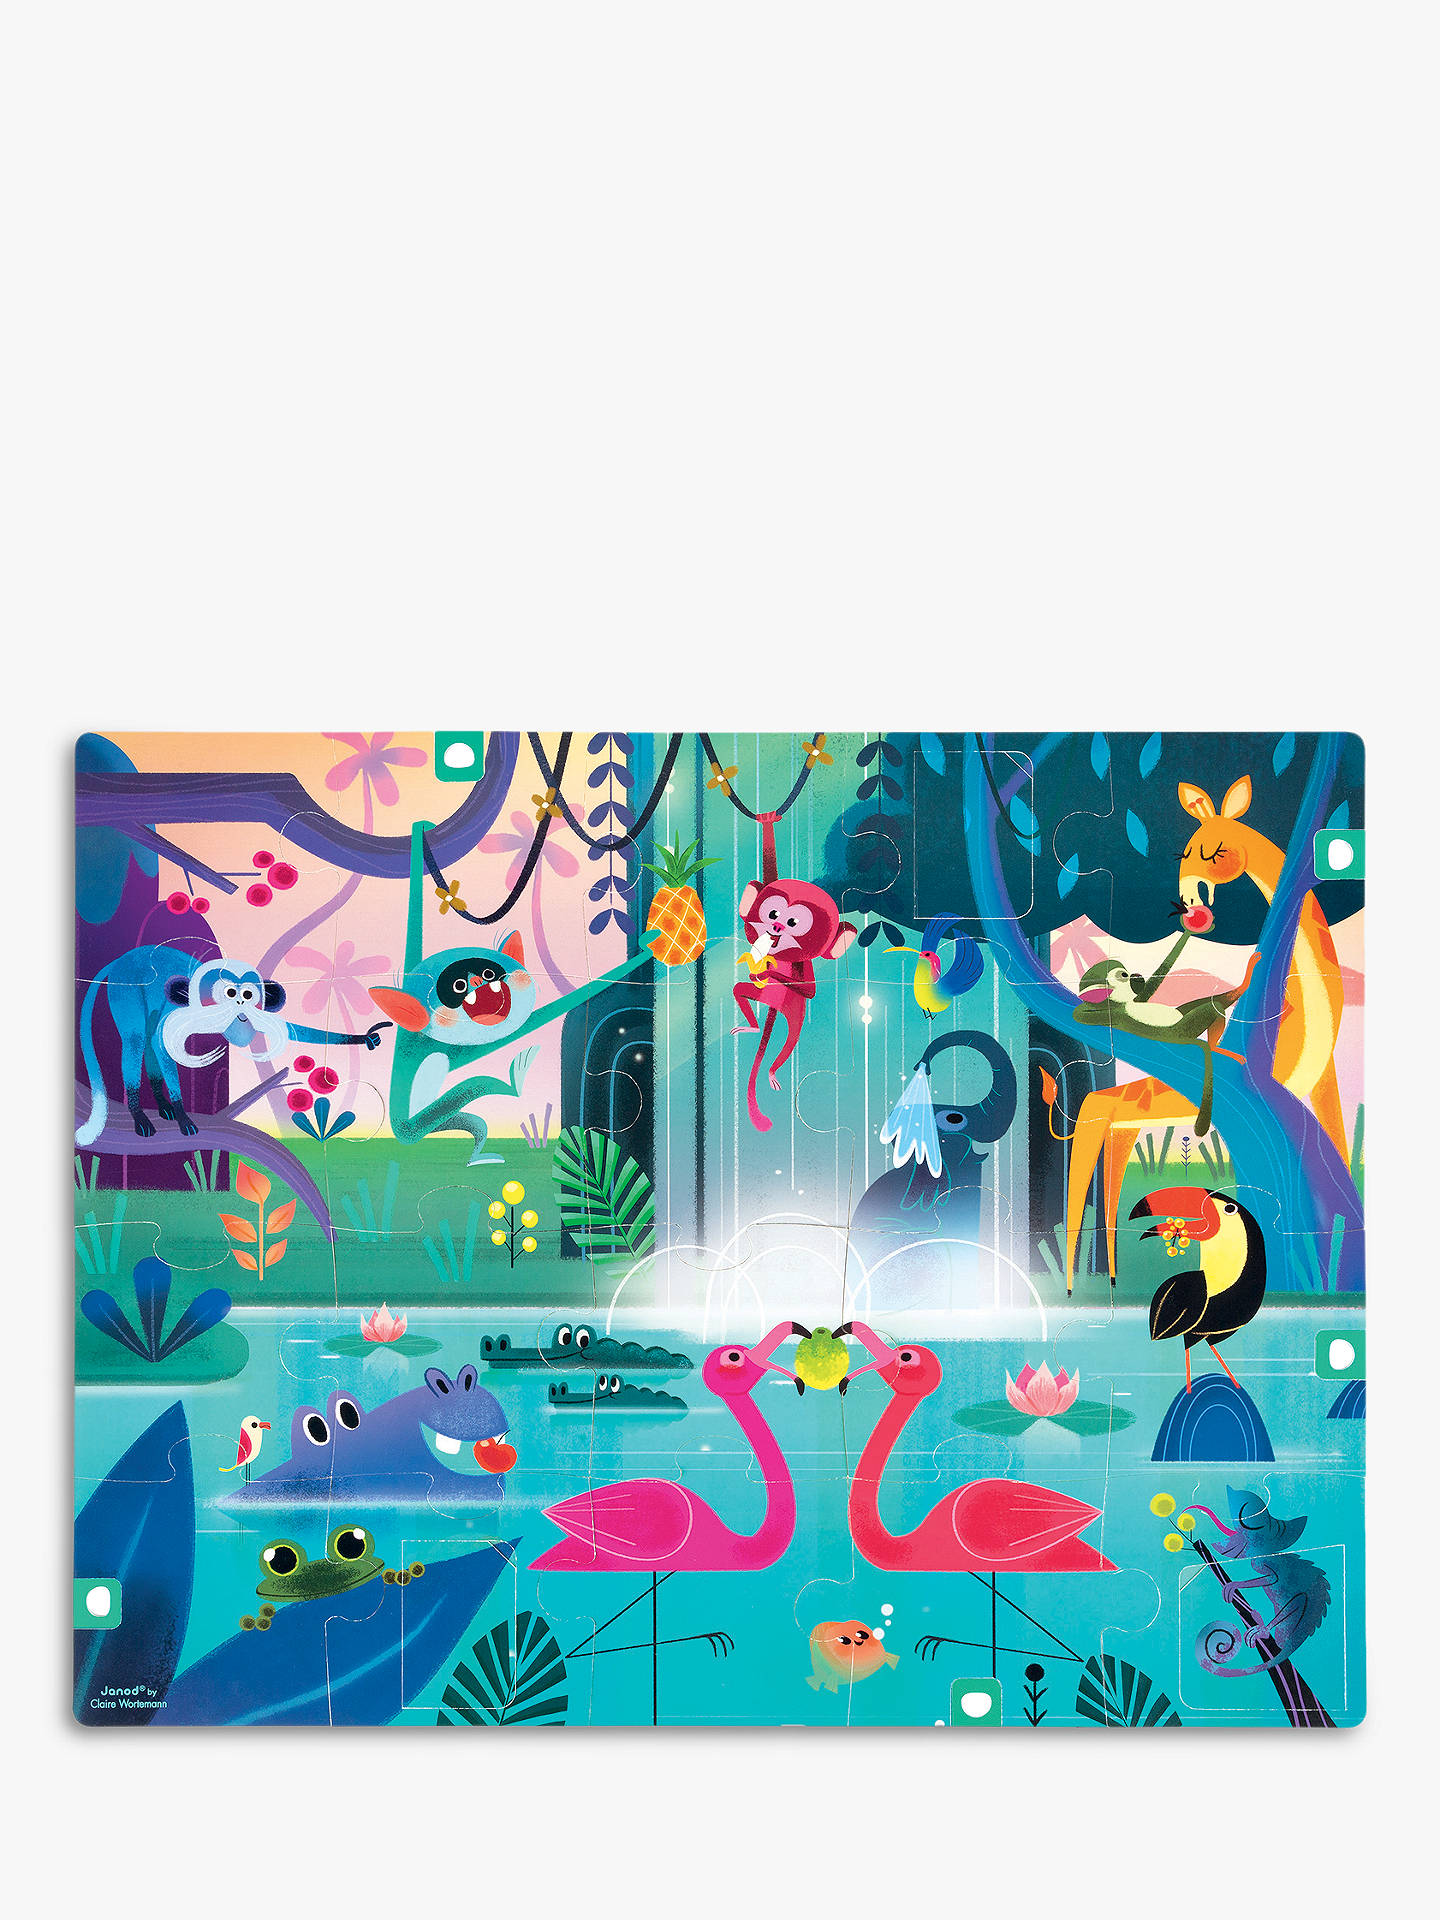 146f68e1 Janod Feast In The Jungle Puzzle, 20 Pieces at John Lewis & Partners